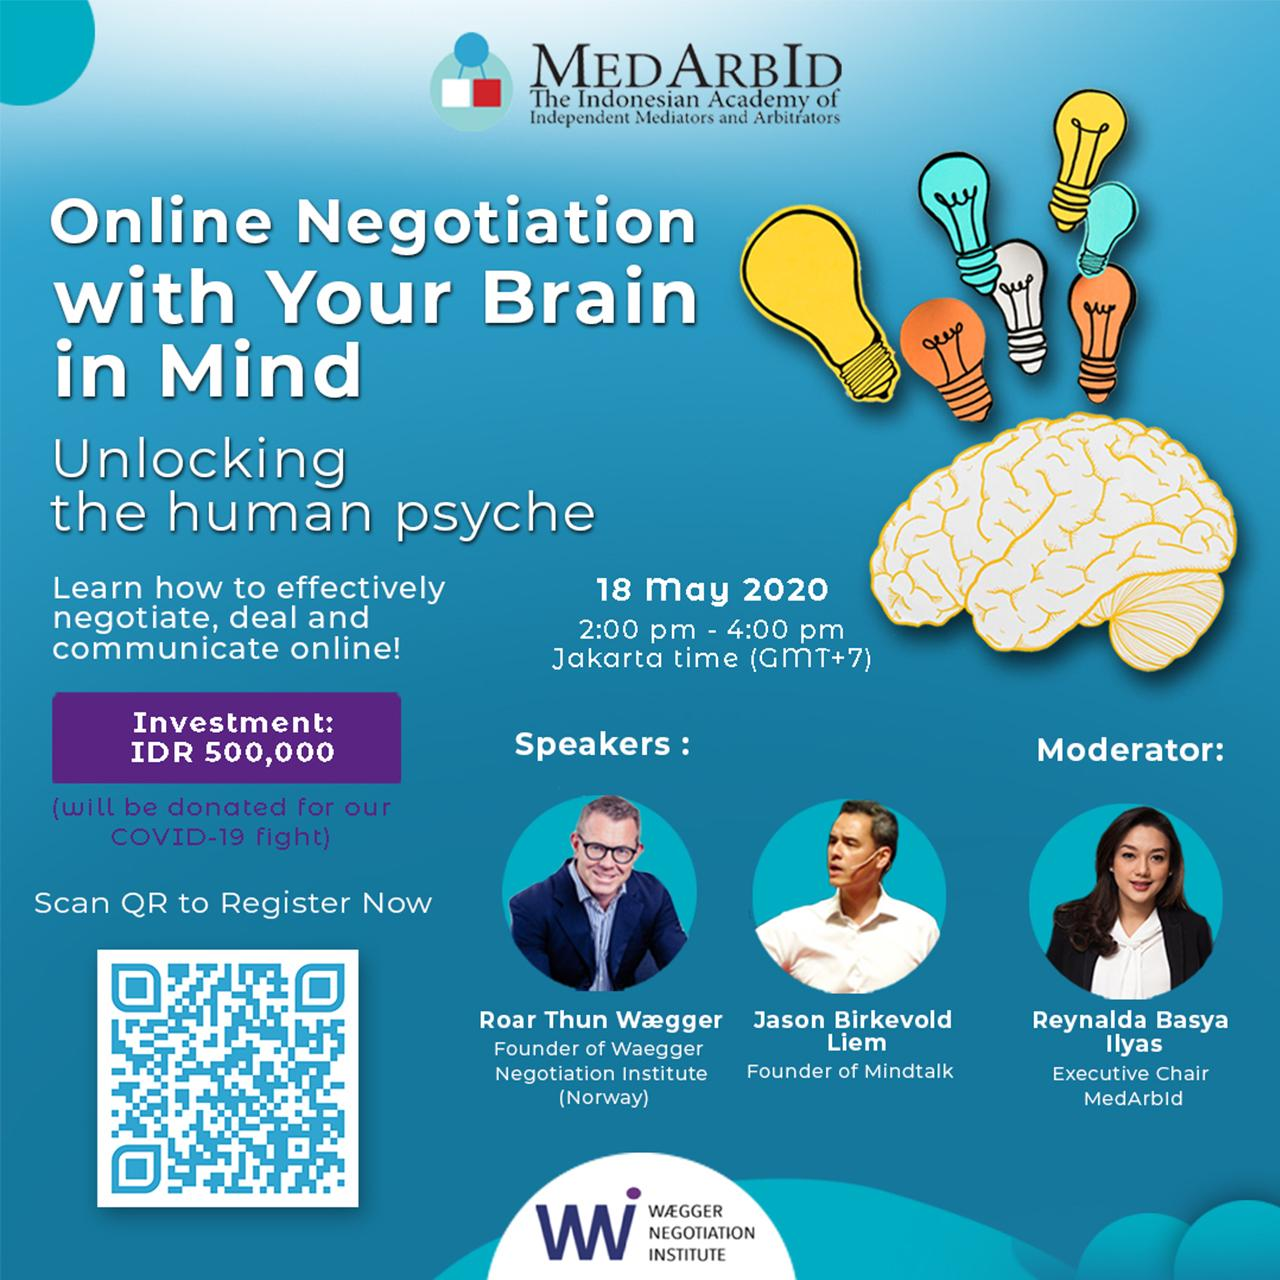 <p>Webinar with Waegger Negotiation Institute</p>